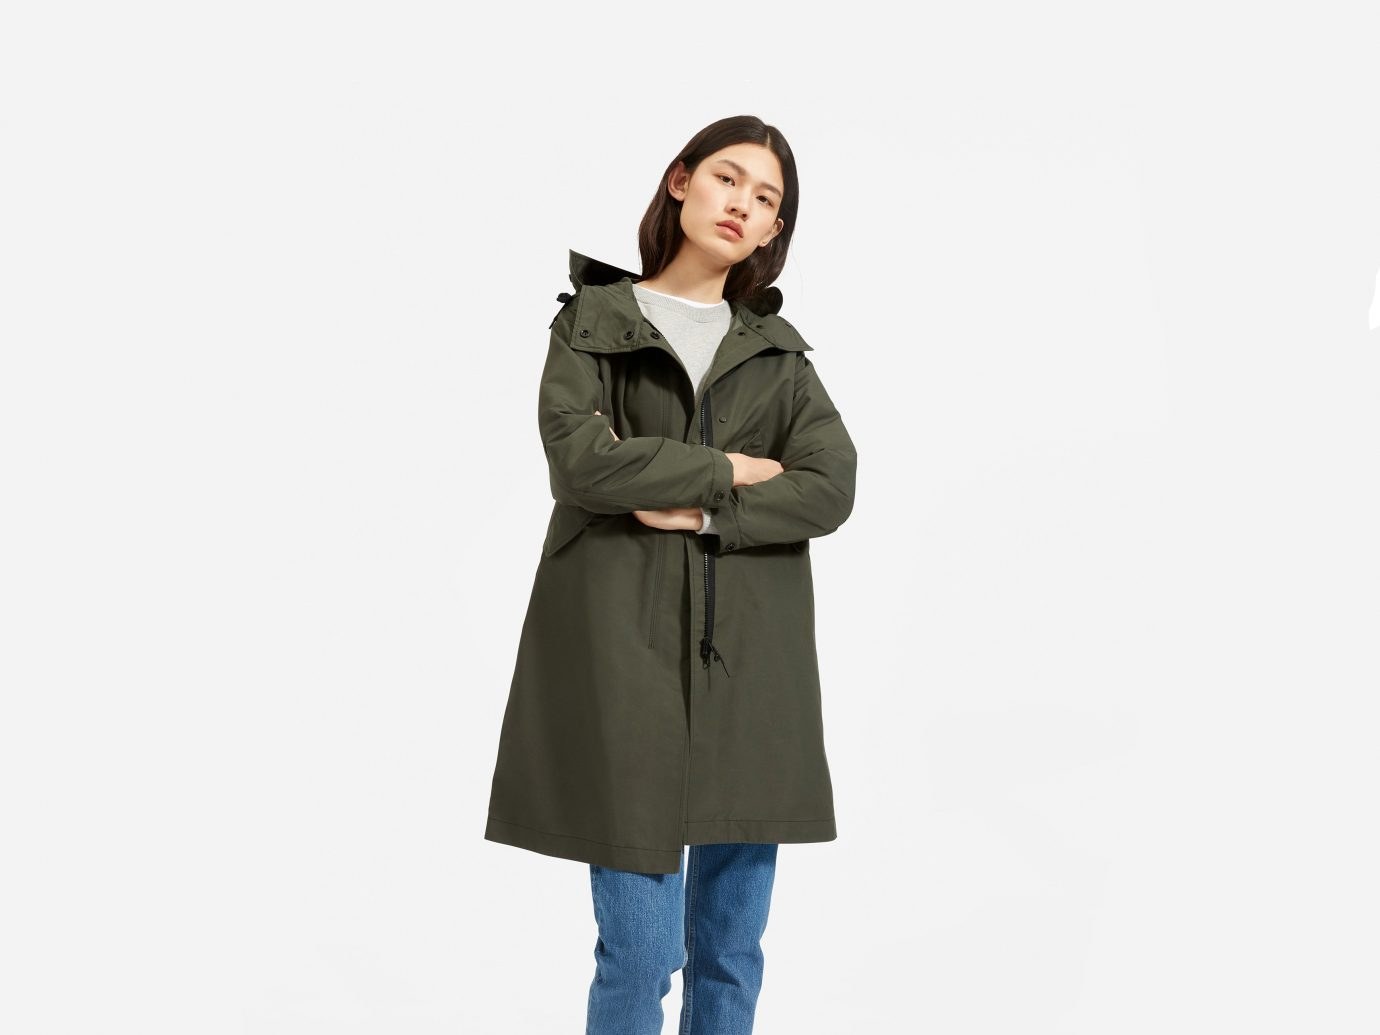 Everlane ReNew Anorak